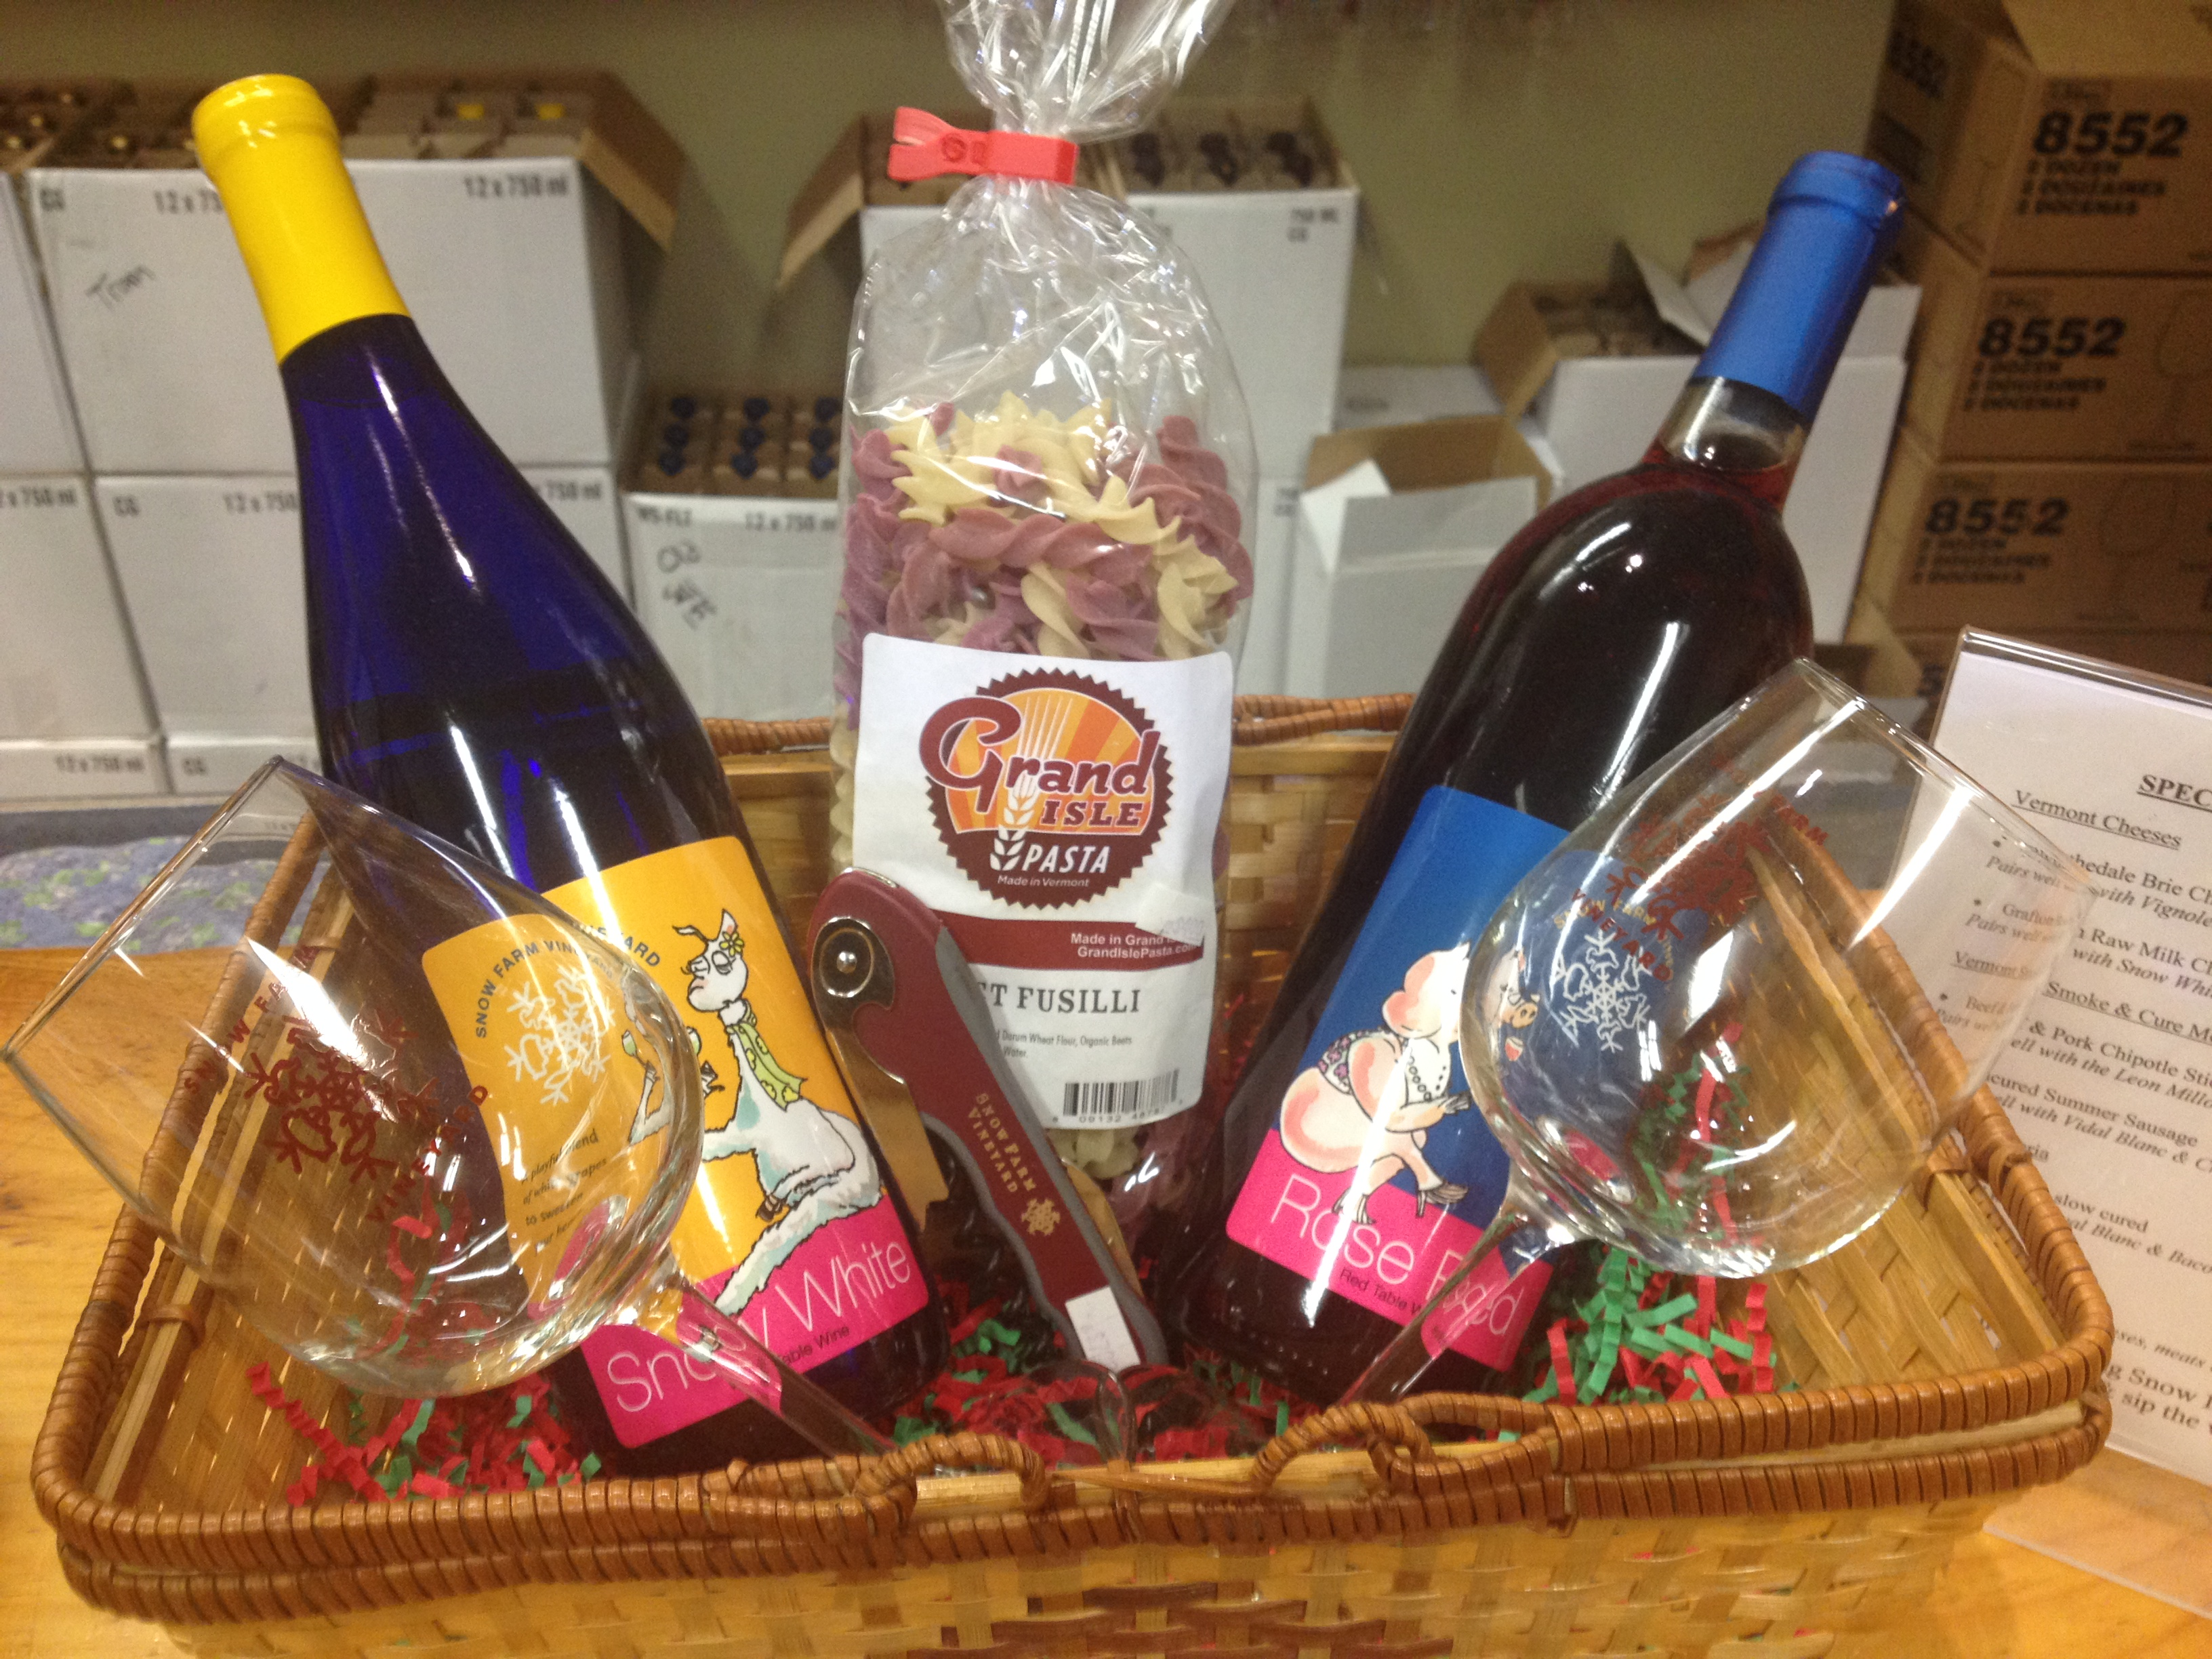 Support Small Business Snow Farm Vineyard Vermont Gift Basket